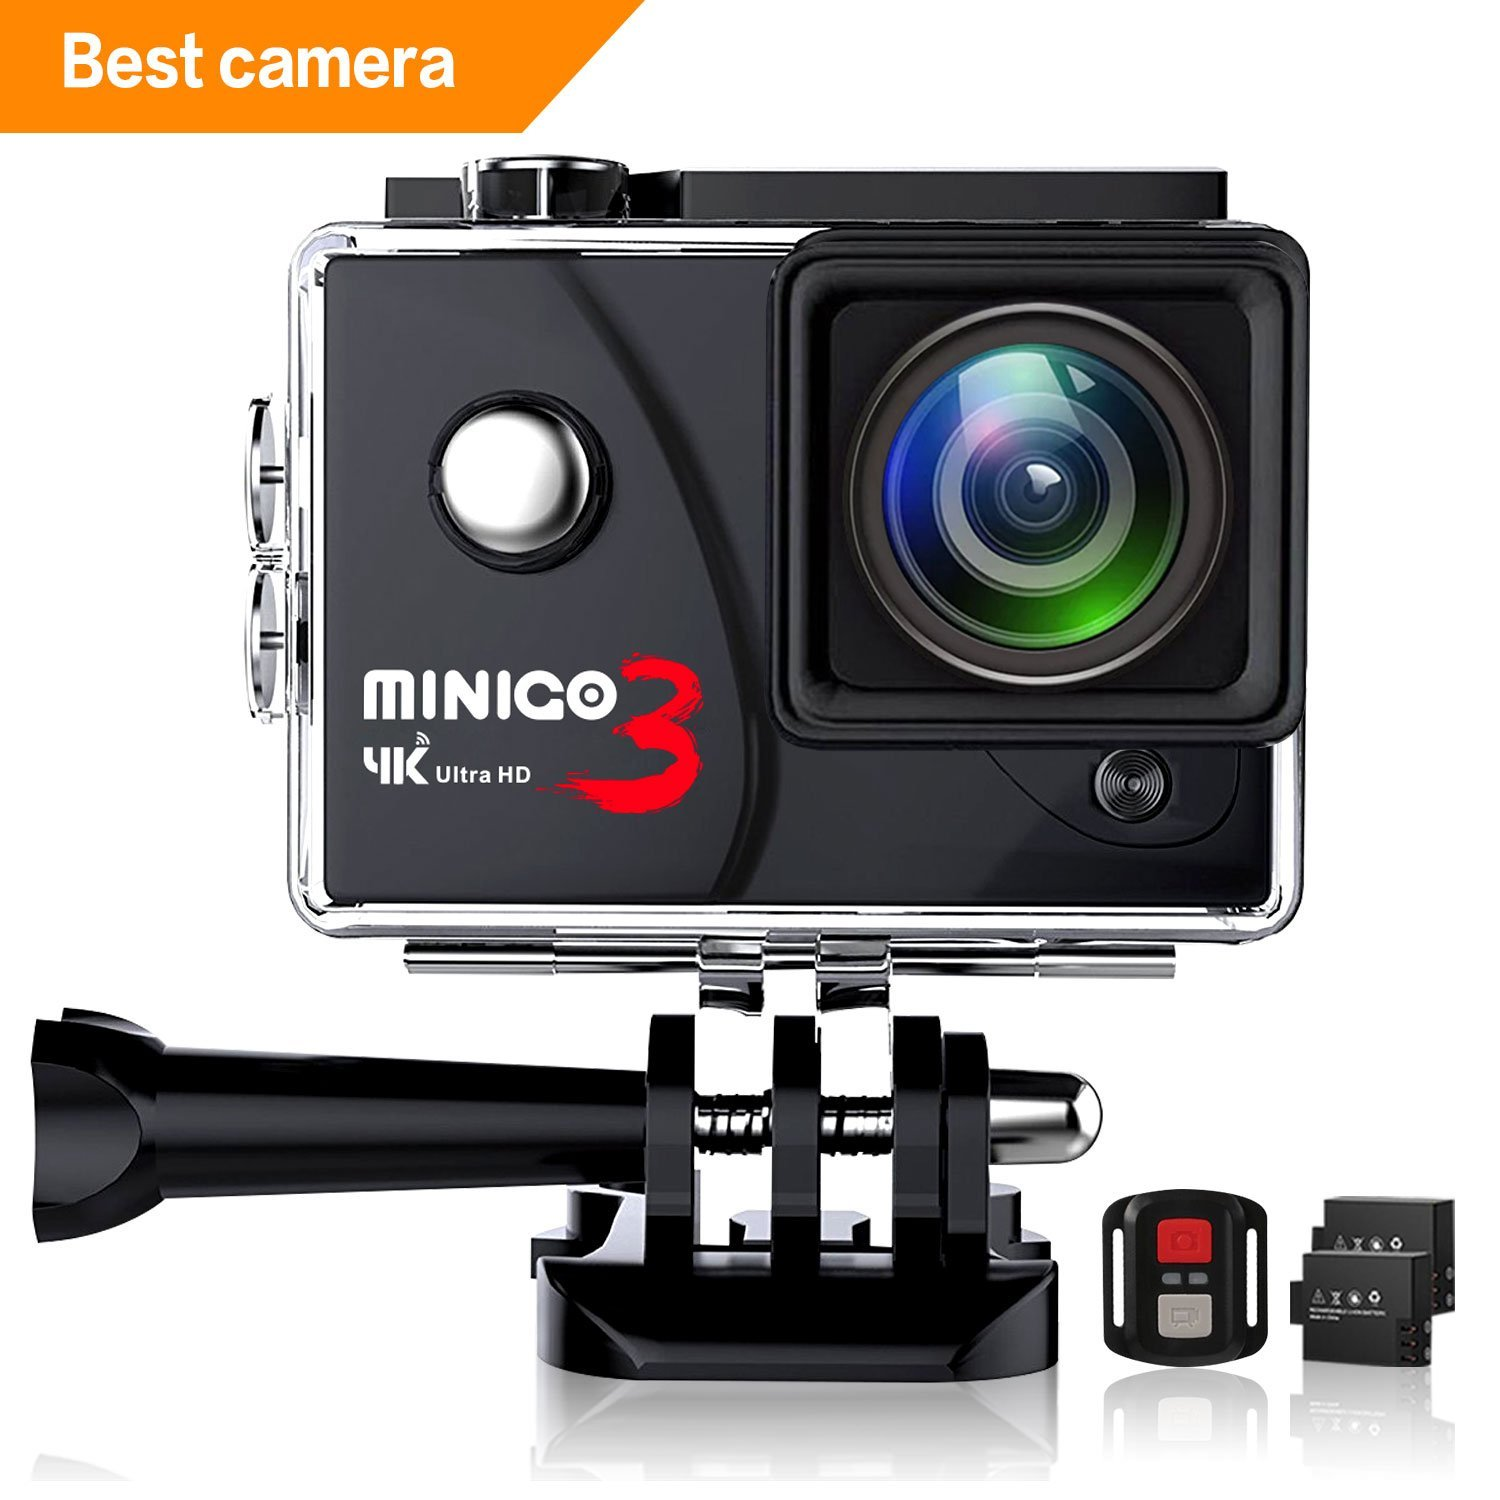 MINIGO 2.7K/4K waterproof camera, 16MP action camera work of the case underwater up to 100FT, 2.0'' screen with Sony sensor, 2 Rechargeable batteries and Remote, Rich mounting accessories kit, Black